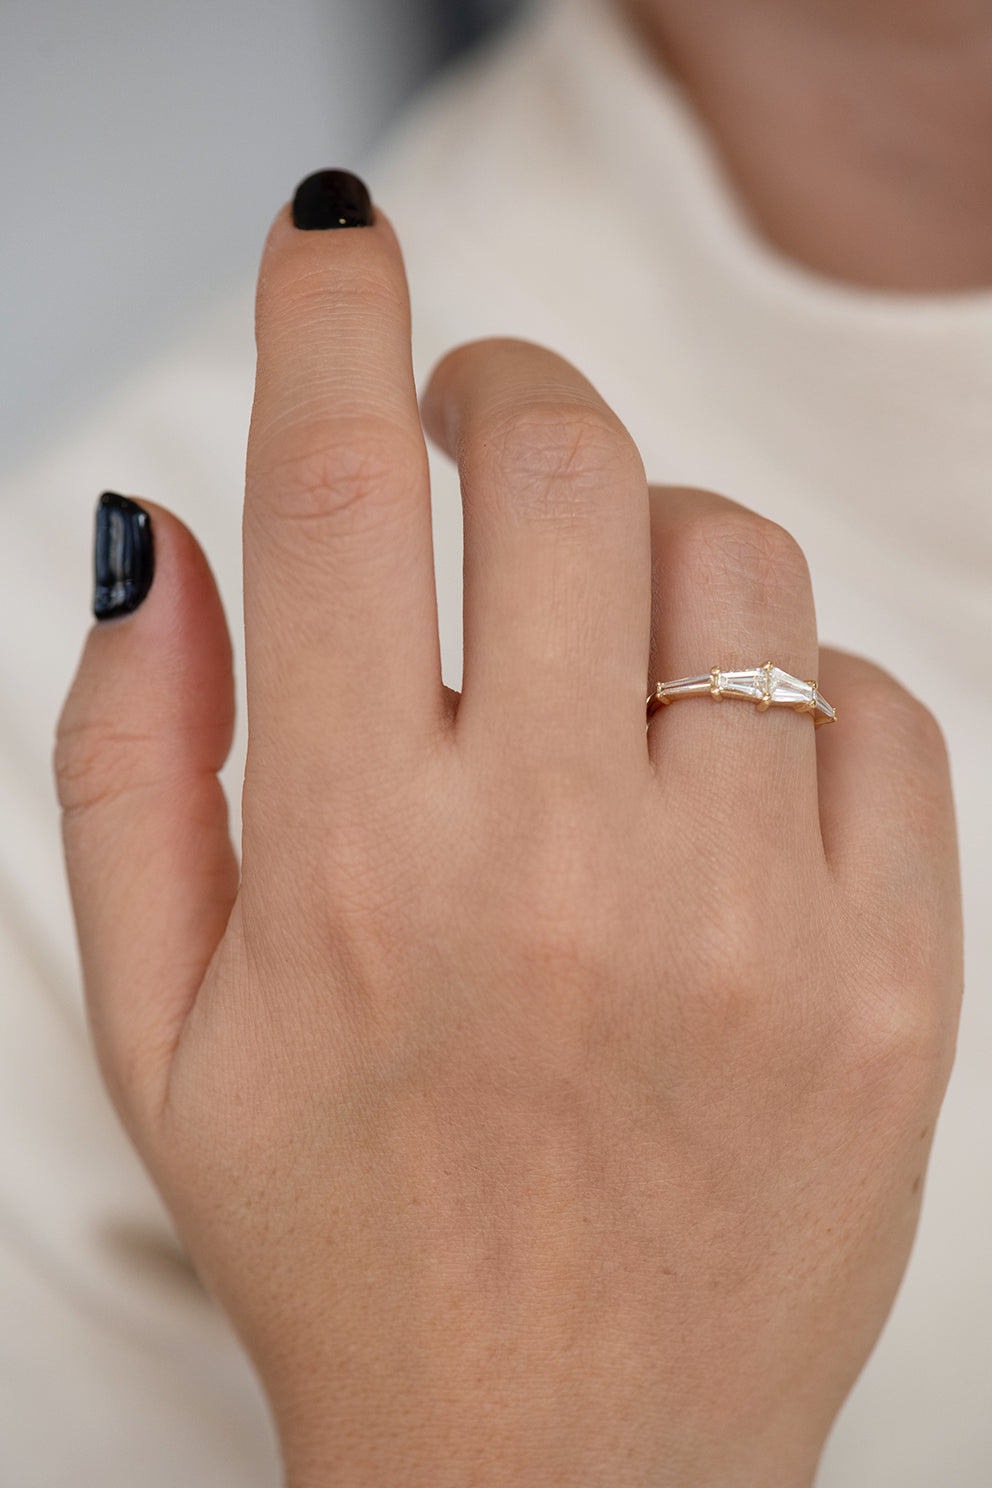 Tapered Baguette Engagement Ring on Hand Lower Angle Frontal Shot